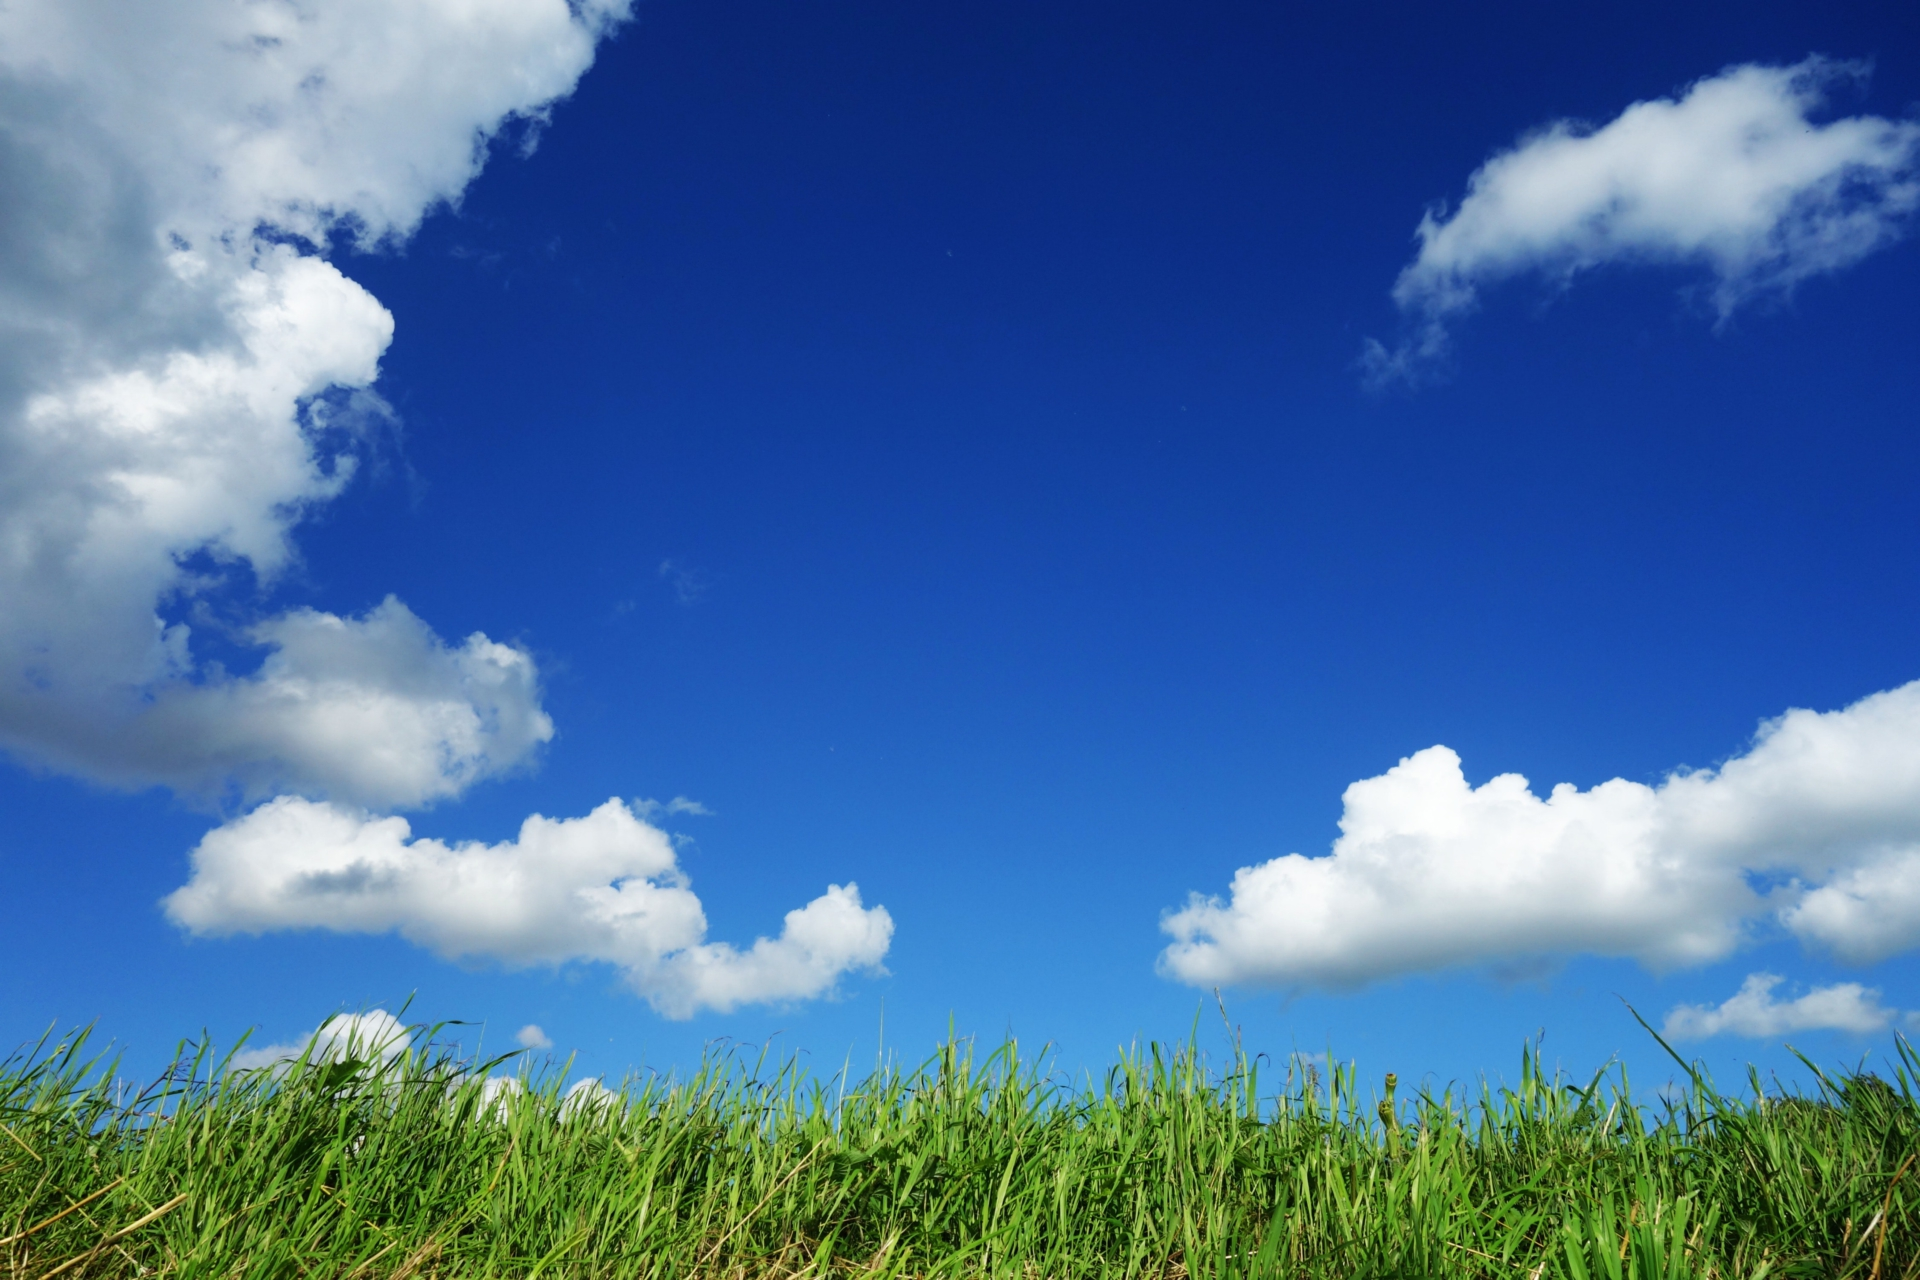 blue-sky-bright-clouds-125457>